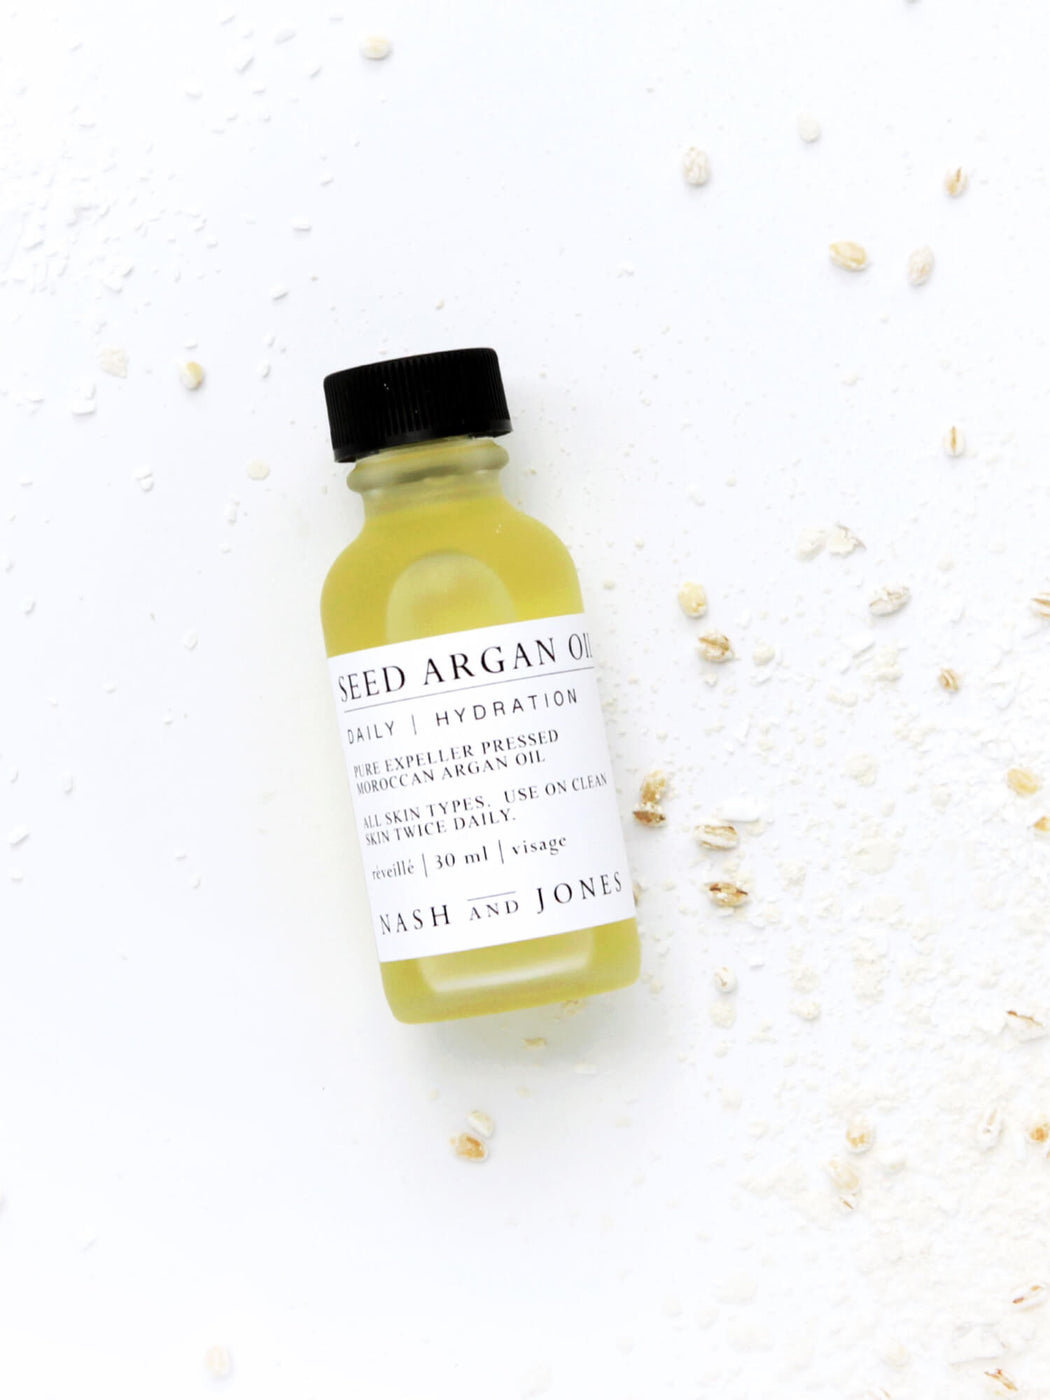 Seed Argan Oil